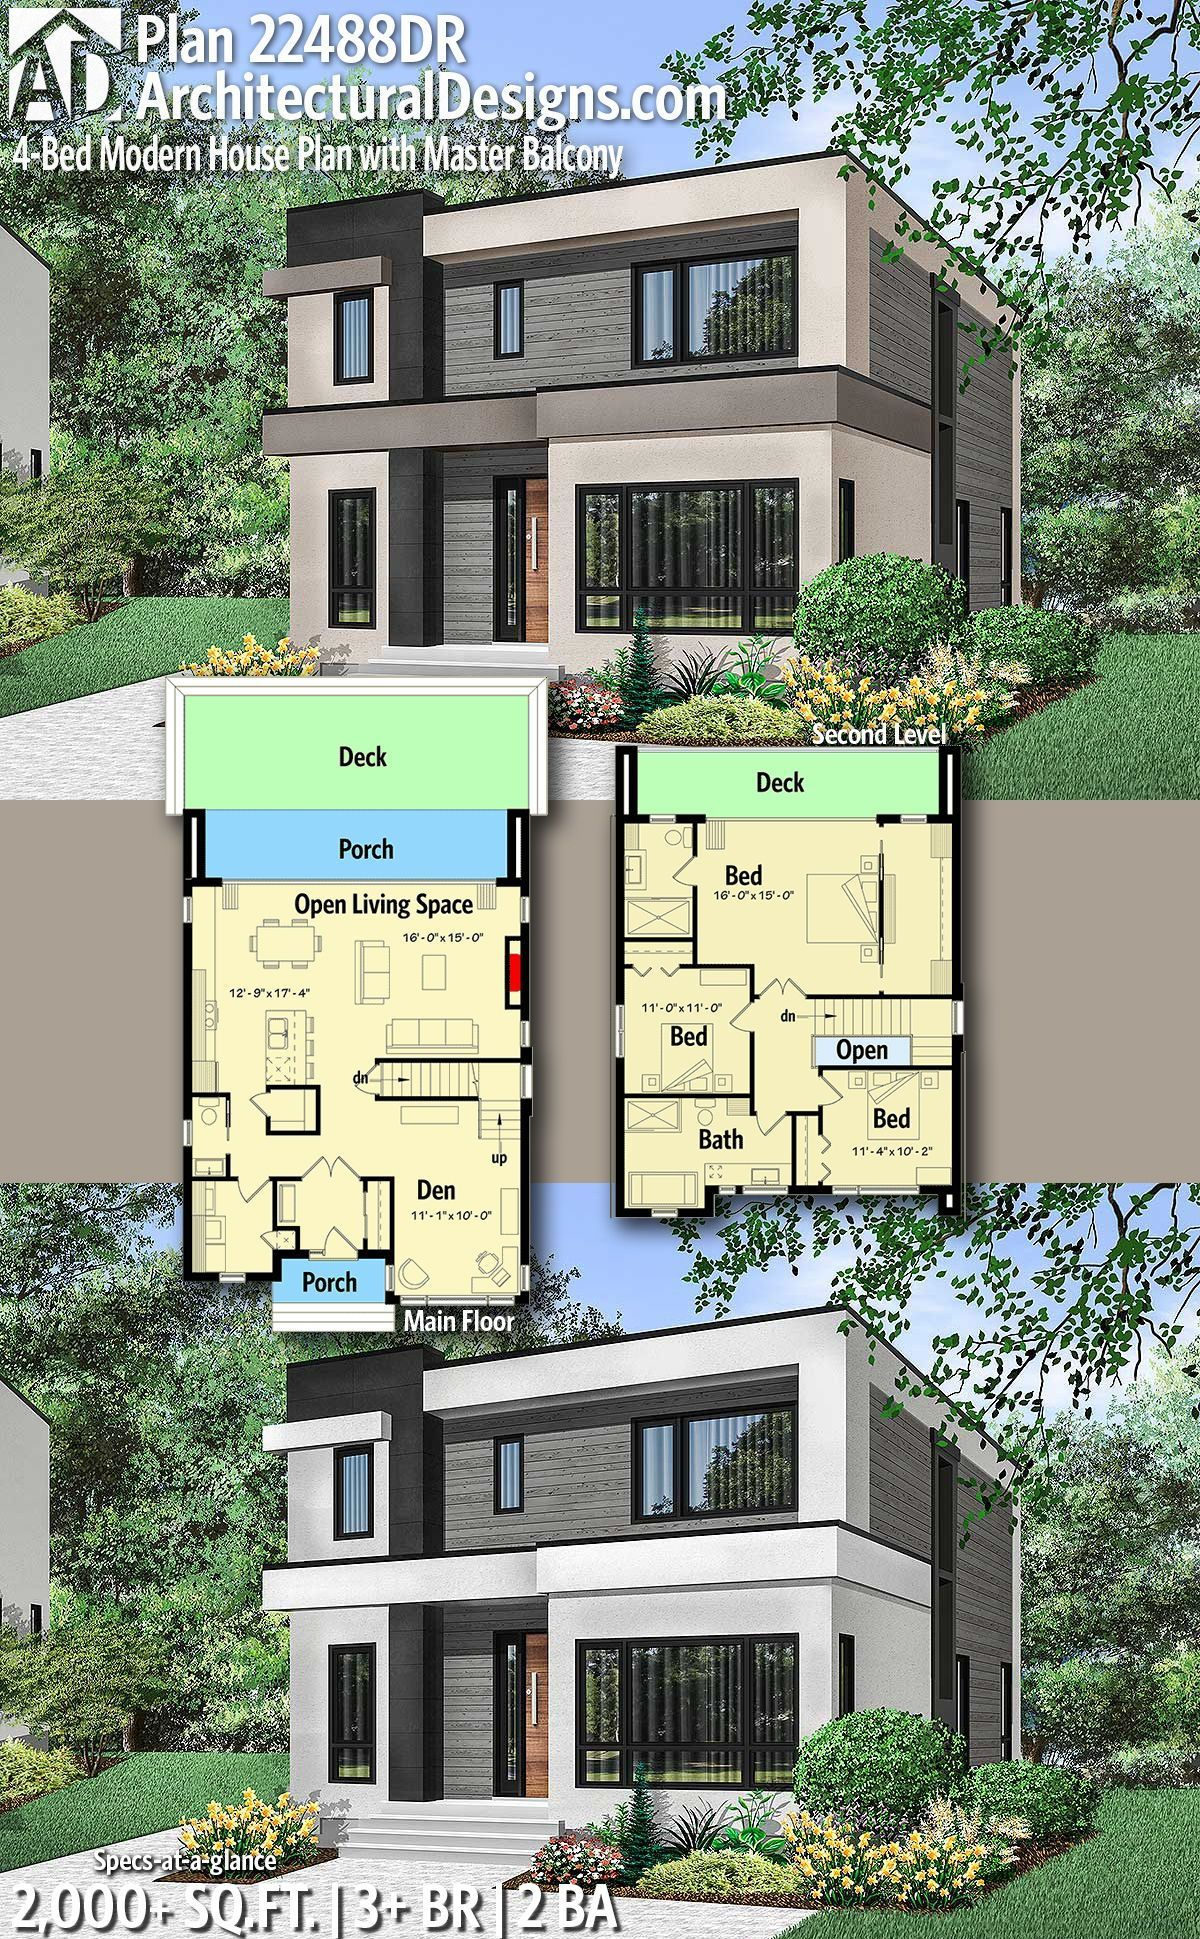 15 Genius Ideas How To Upgrade 3 Bedroom Modern House Design In 2020 Modern House Plans Architecture House Modern House Plan